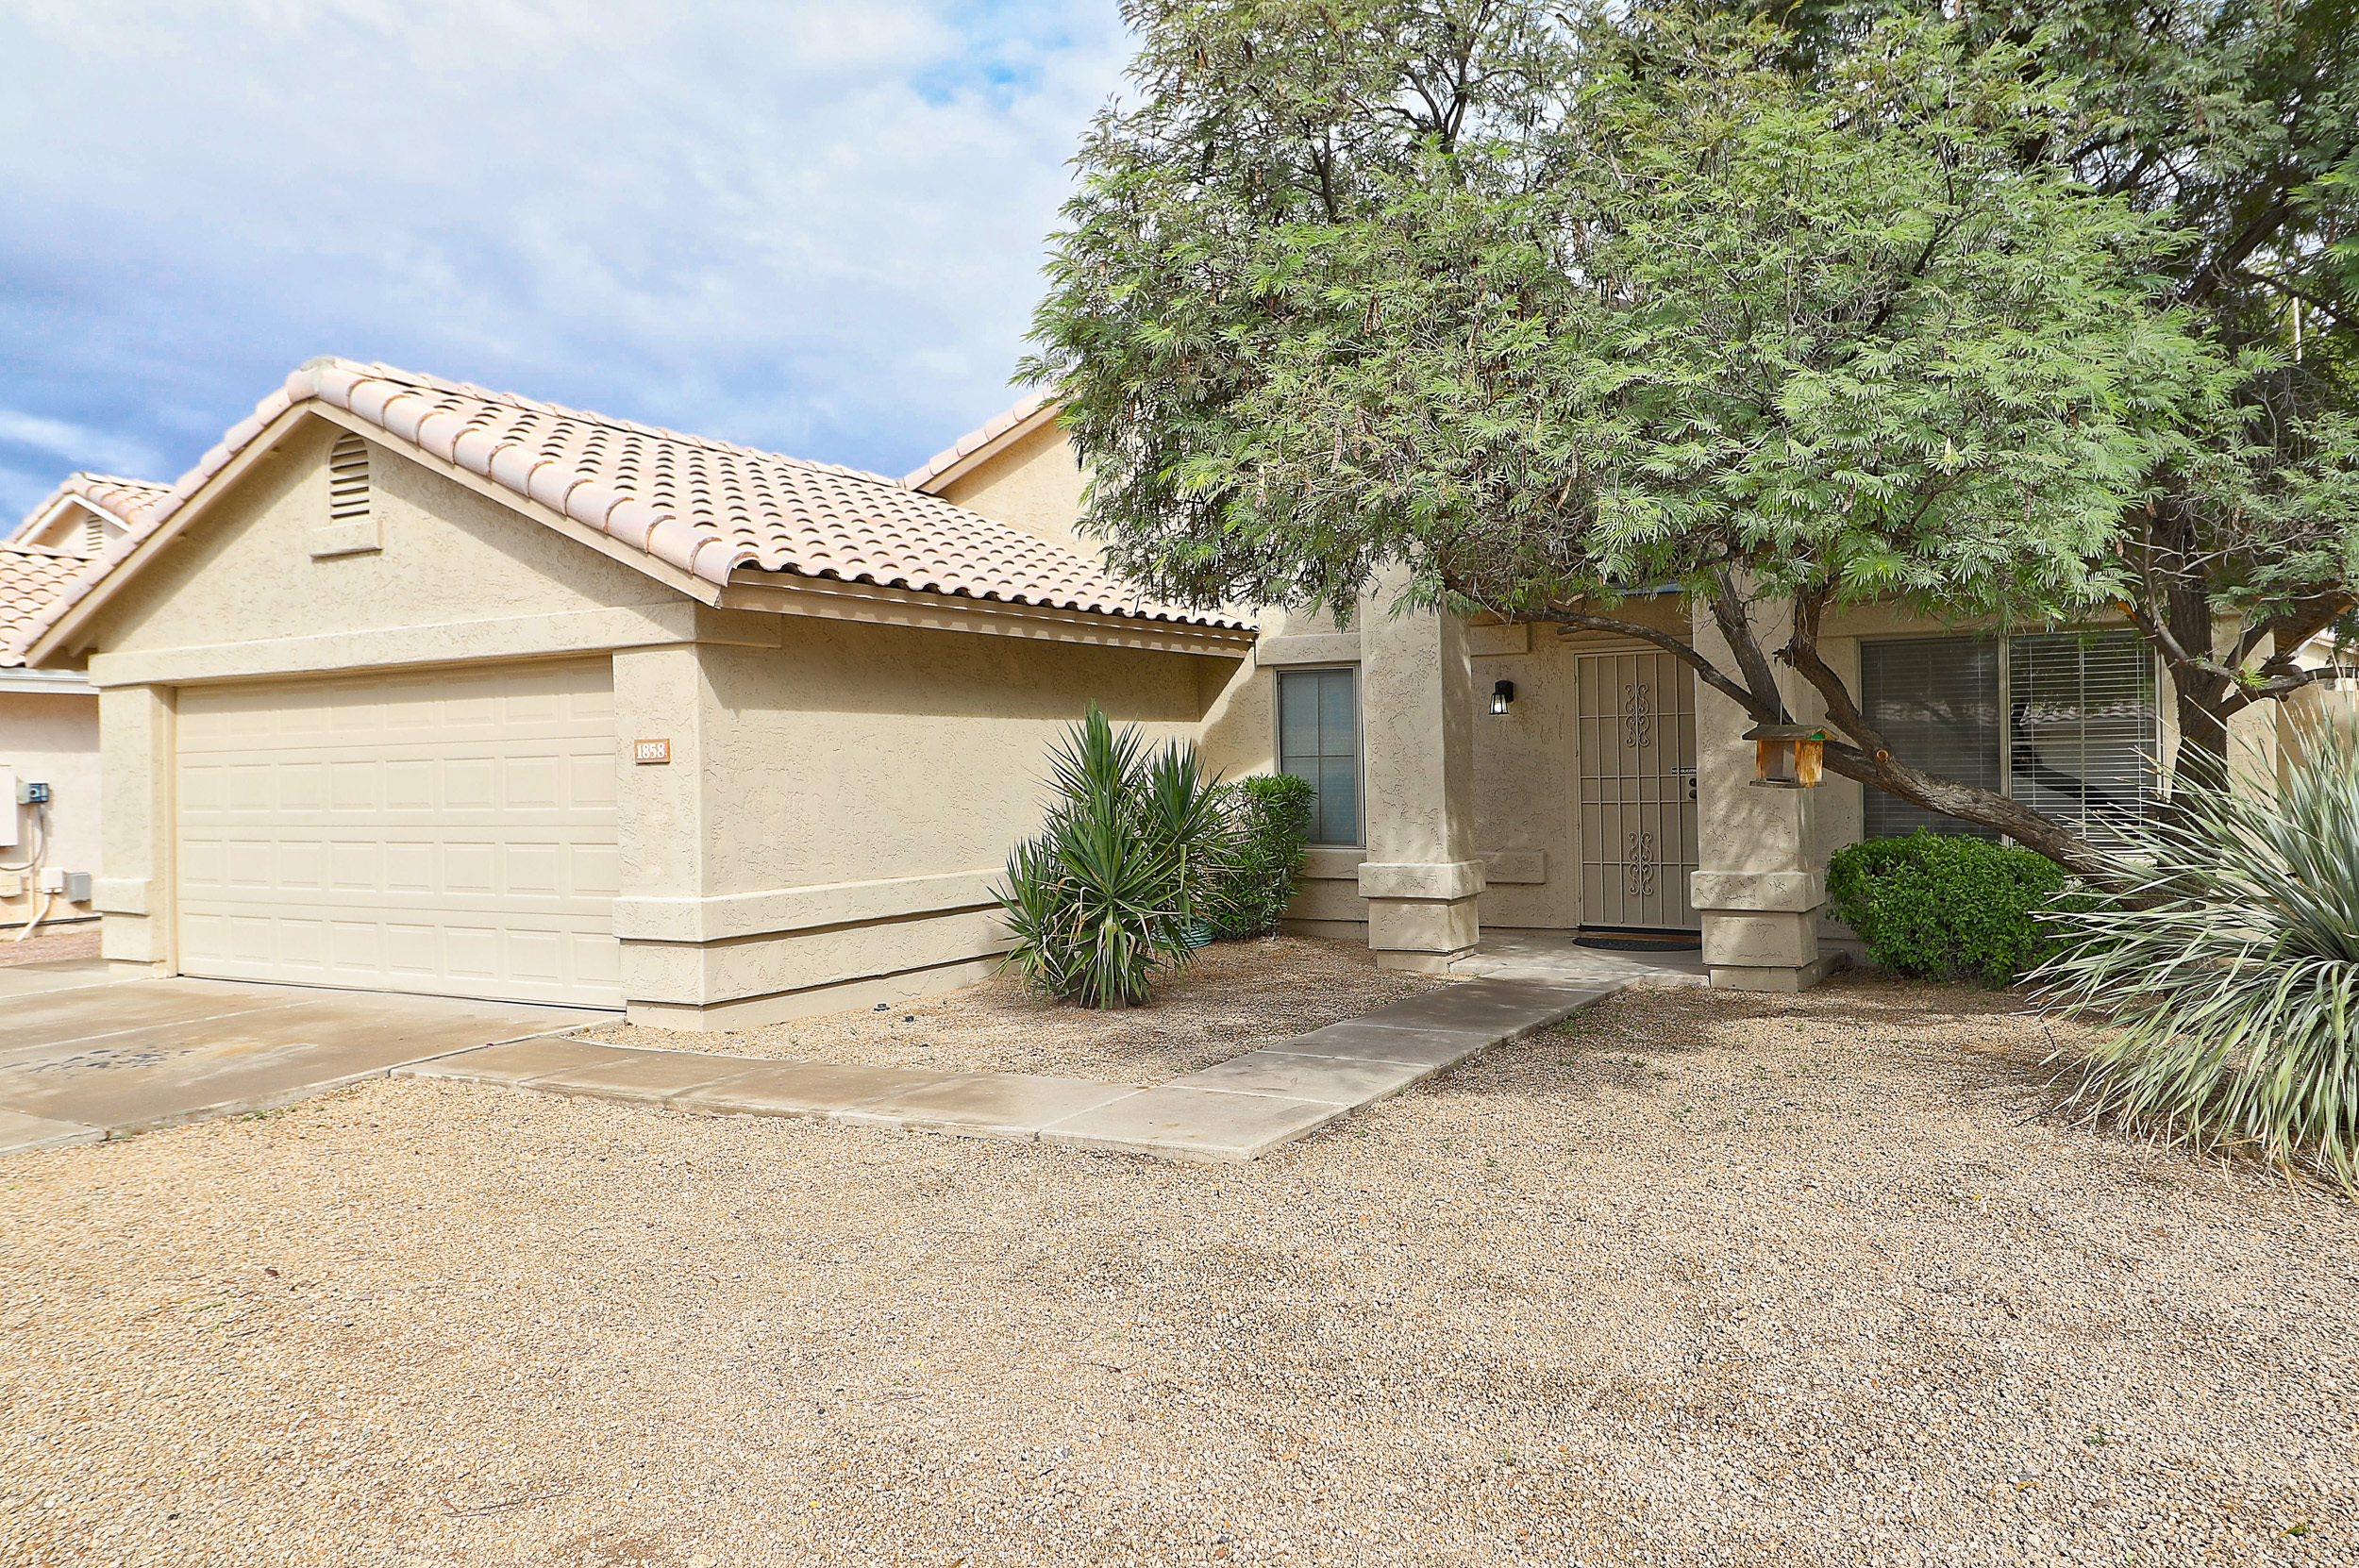 4 bedroom home for sale in Gilbert